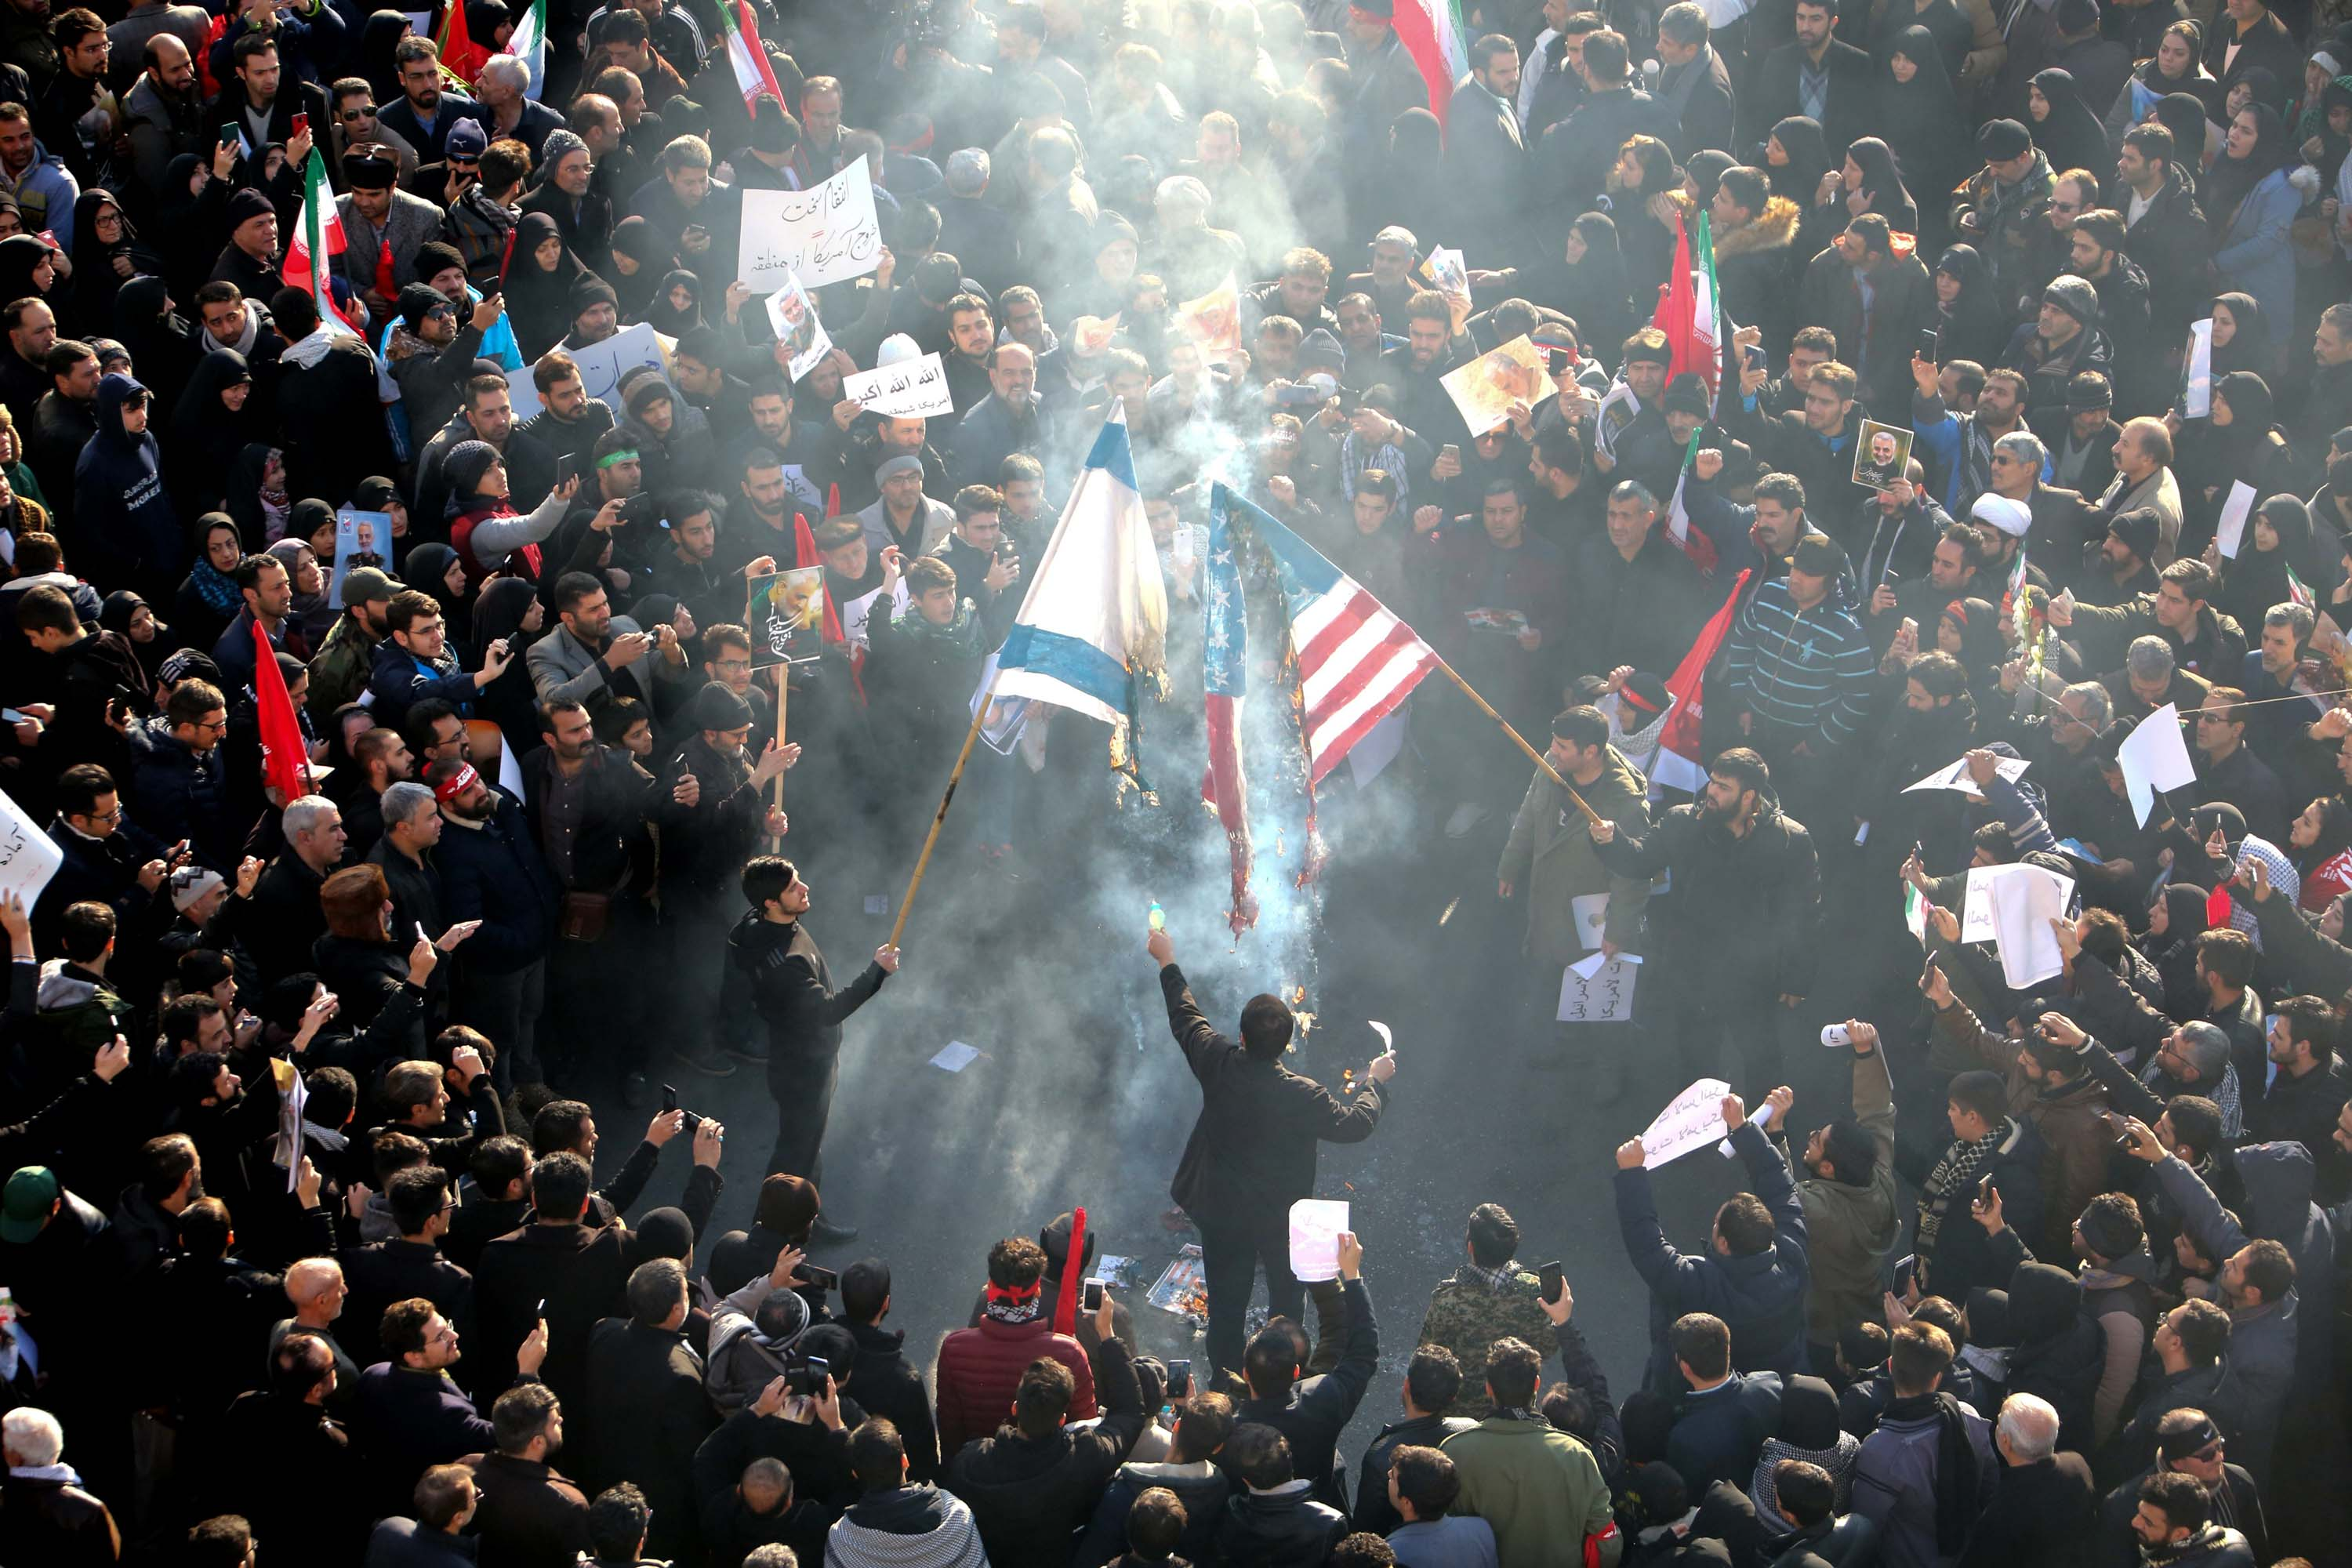 Iranians set a US and Israeli flag on fire during the funeral procession.